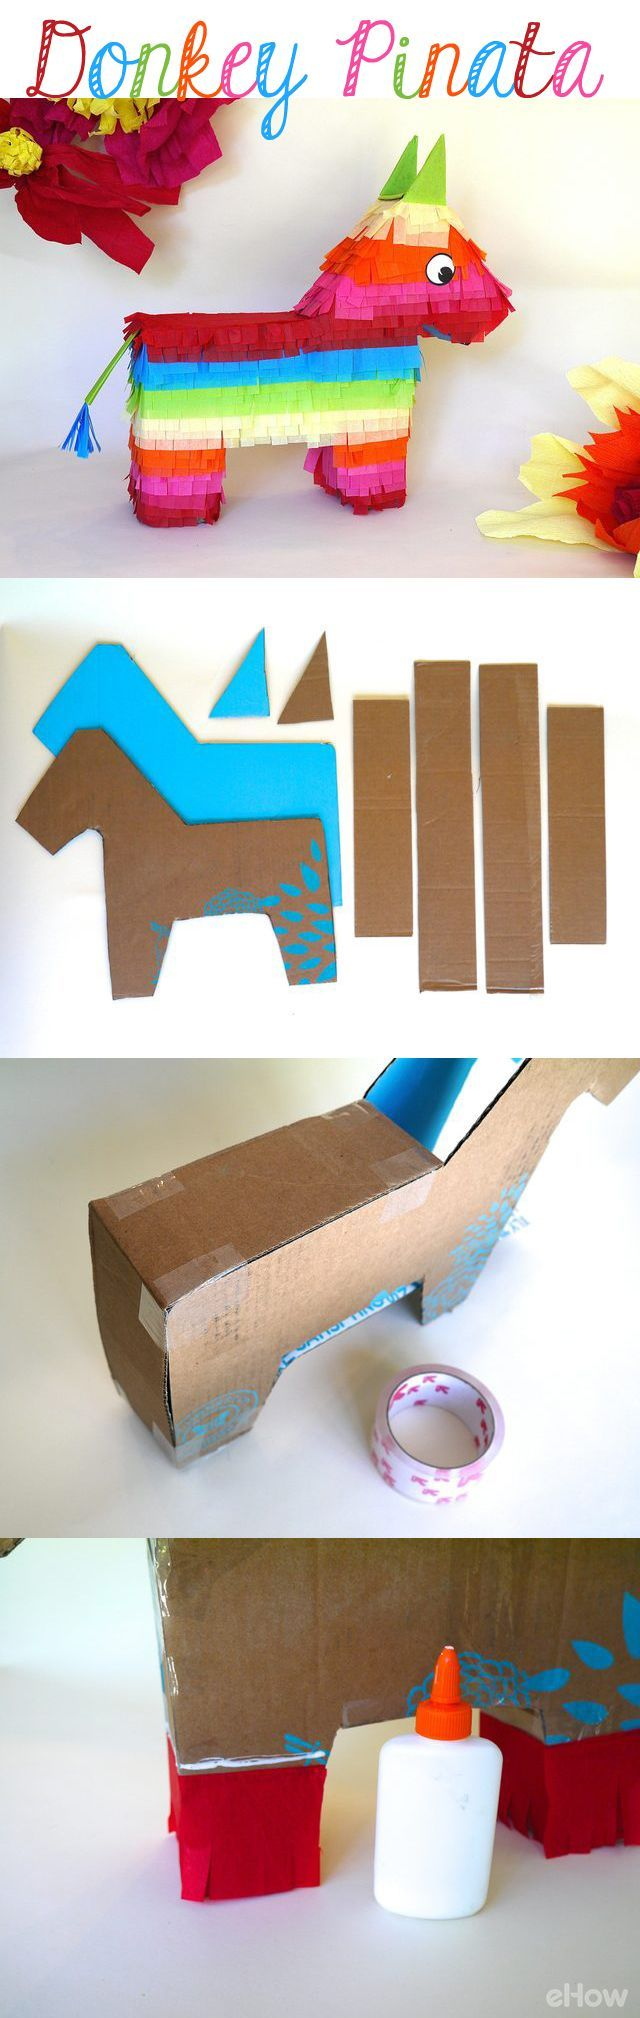 DIY your own traditional donkey pinata for any summer party and, obviously, Cinco de Mayo! So easy to make once you check out this tutorial! Get the kids involved for a fun afternoon craft: http://www.ehow.com/how_5022697_make-donkey-pinata.html?utm_source=pinterest.com&utm_medium=referral&utm_content=inline&utm_campaign=fanpage